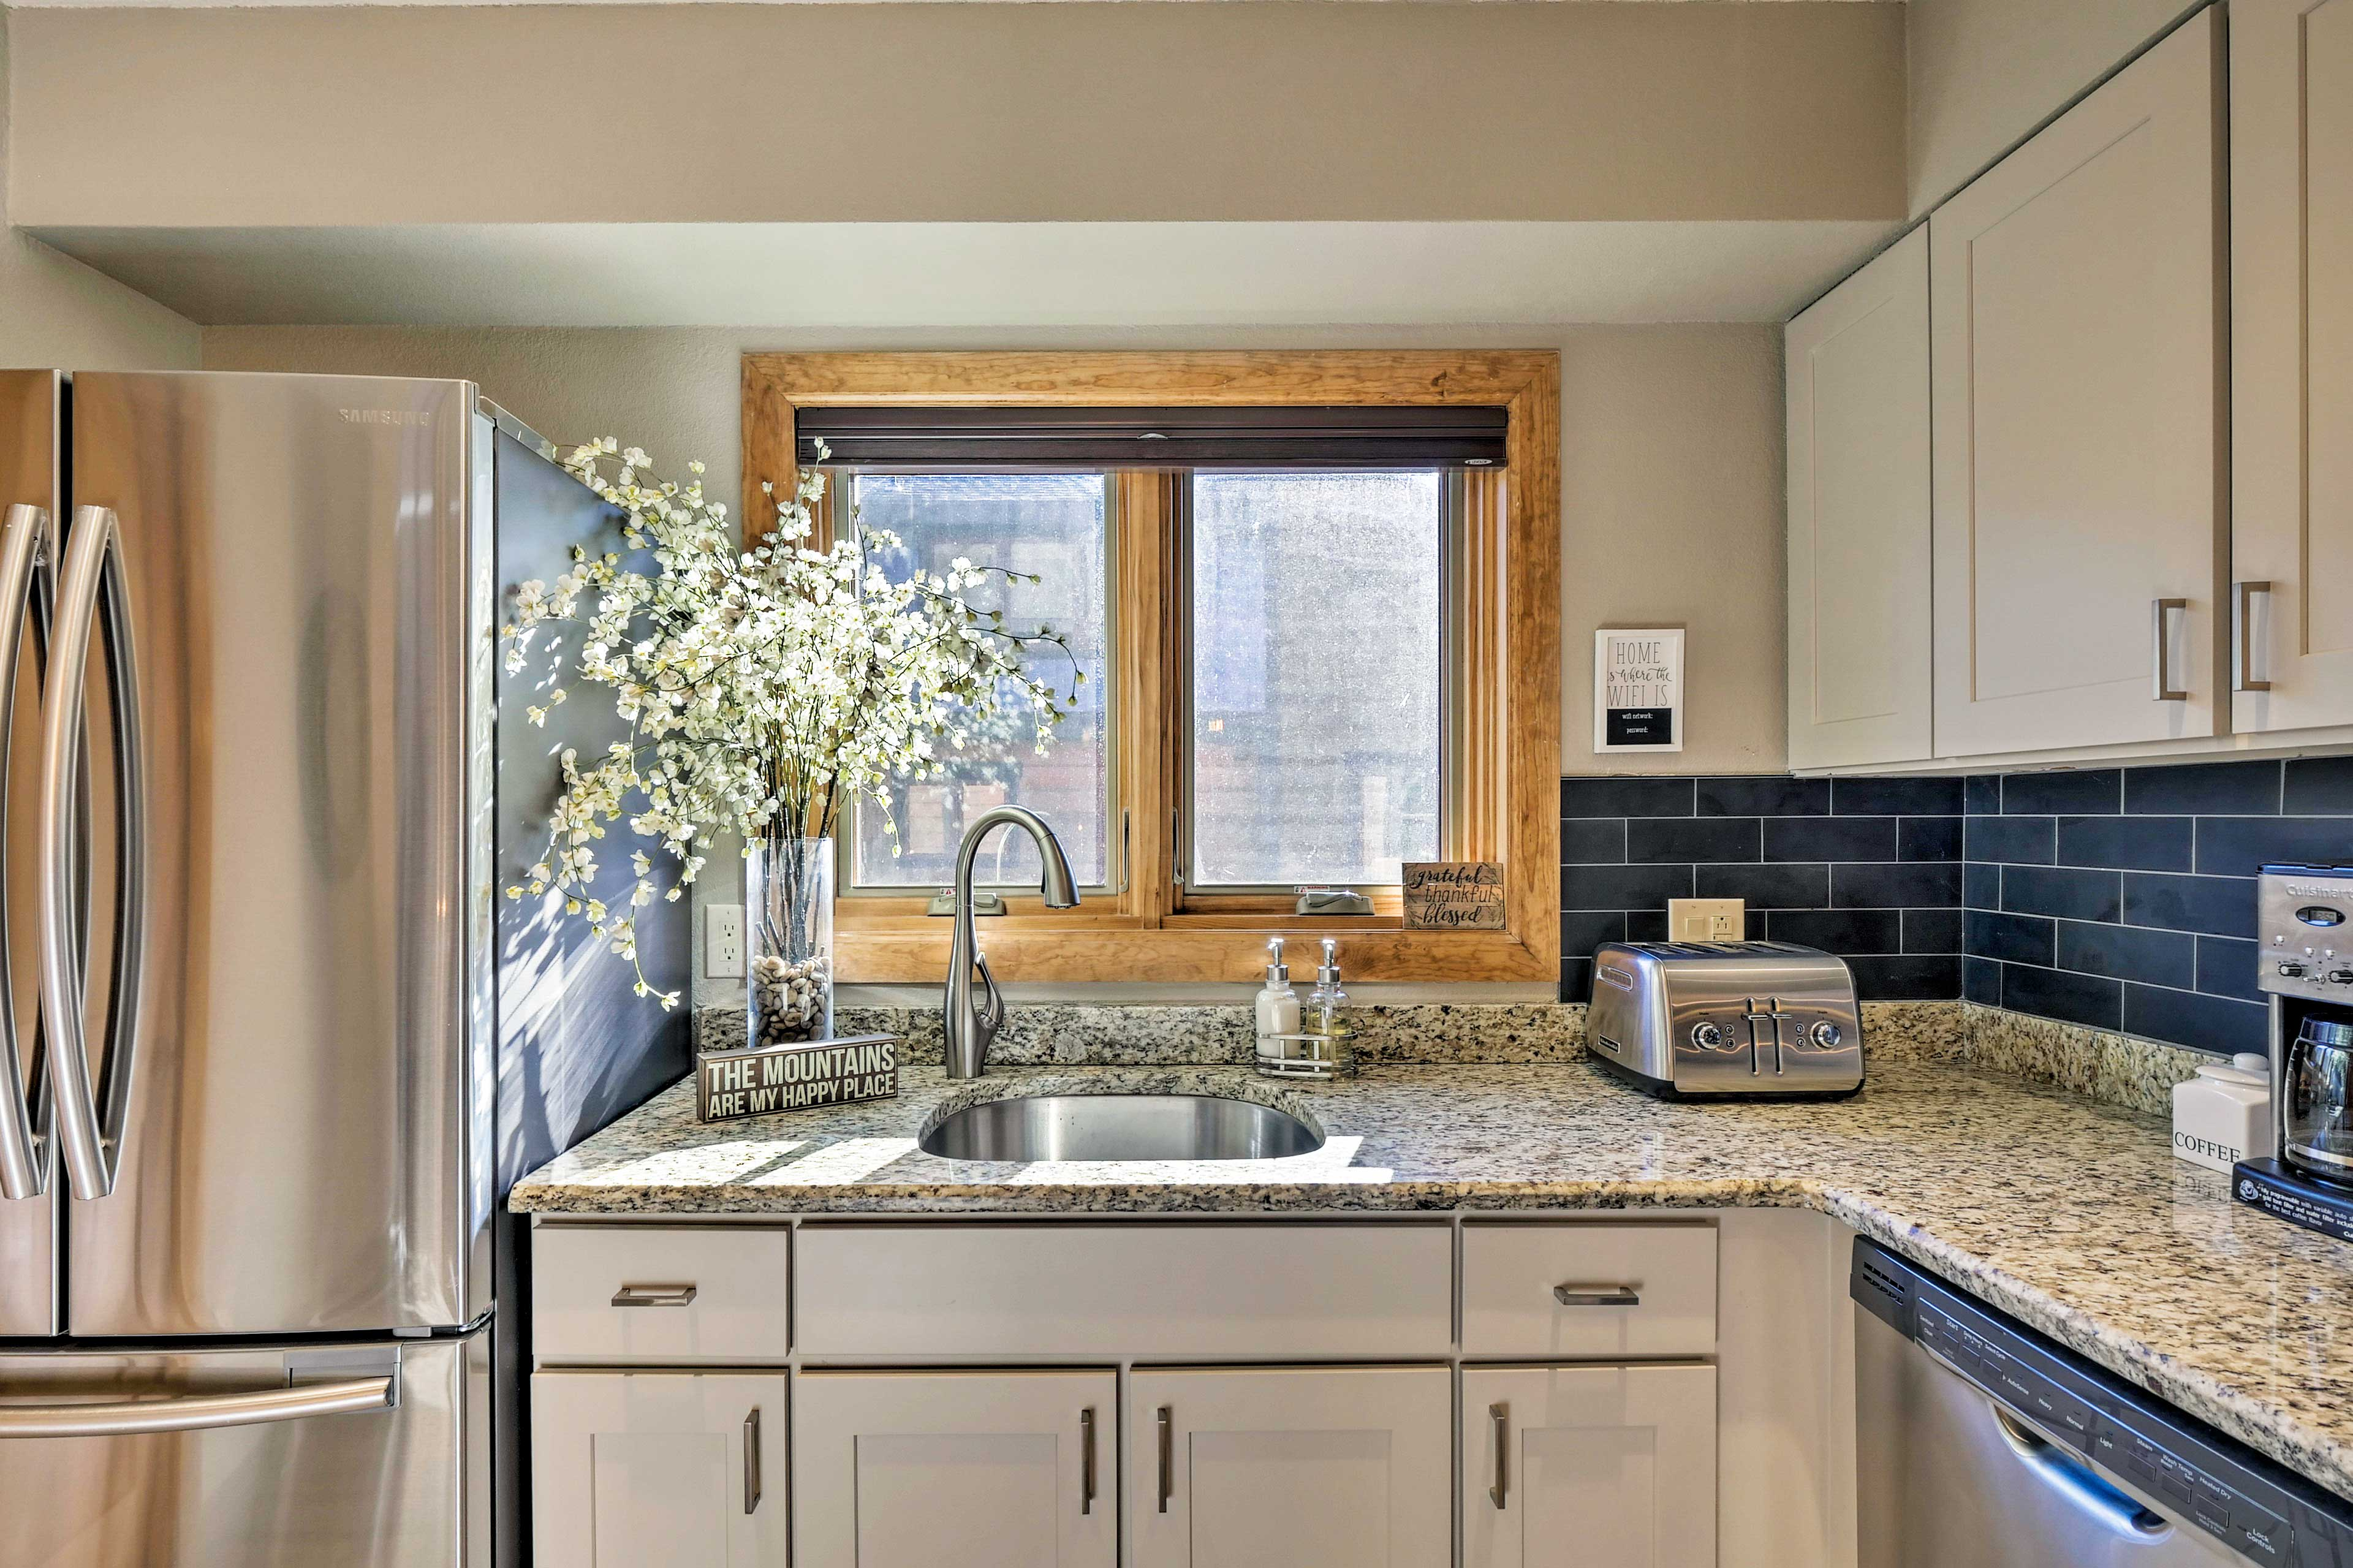 Ample counter space makes cooking at home a breeze.